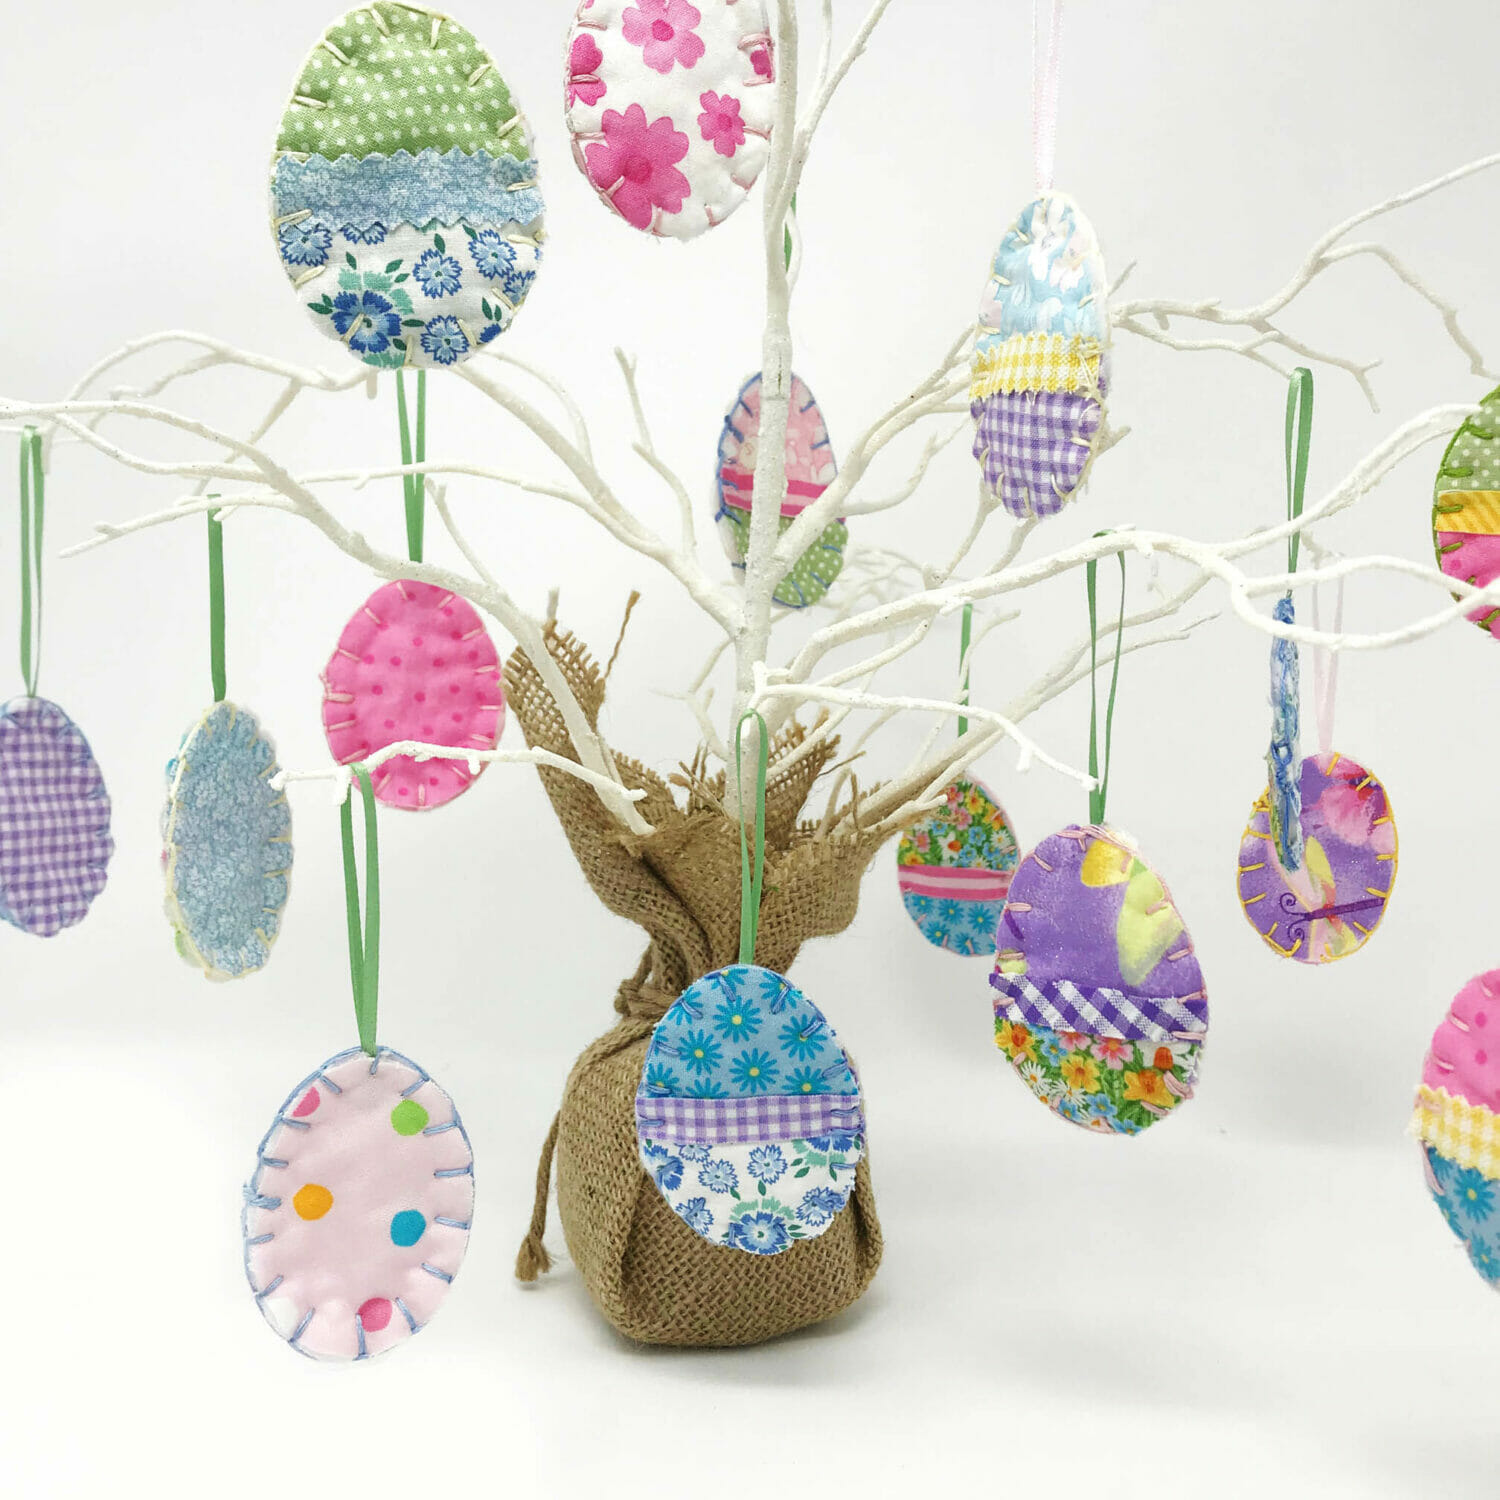 DIY Easter Egg Ornaments made from Fabric Scraps